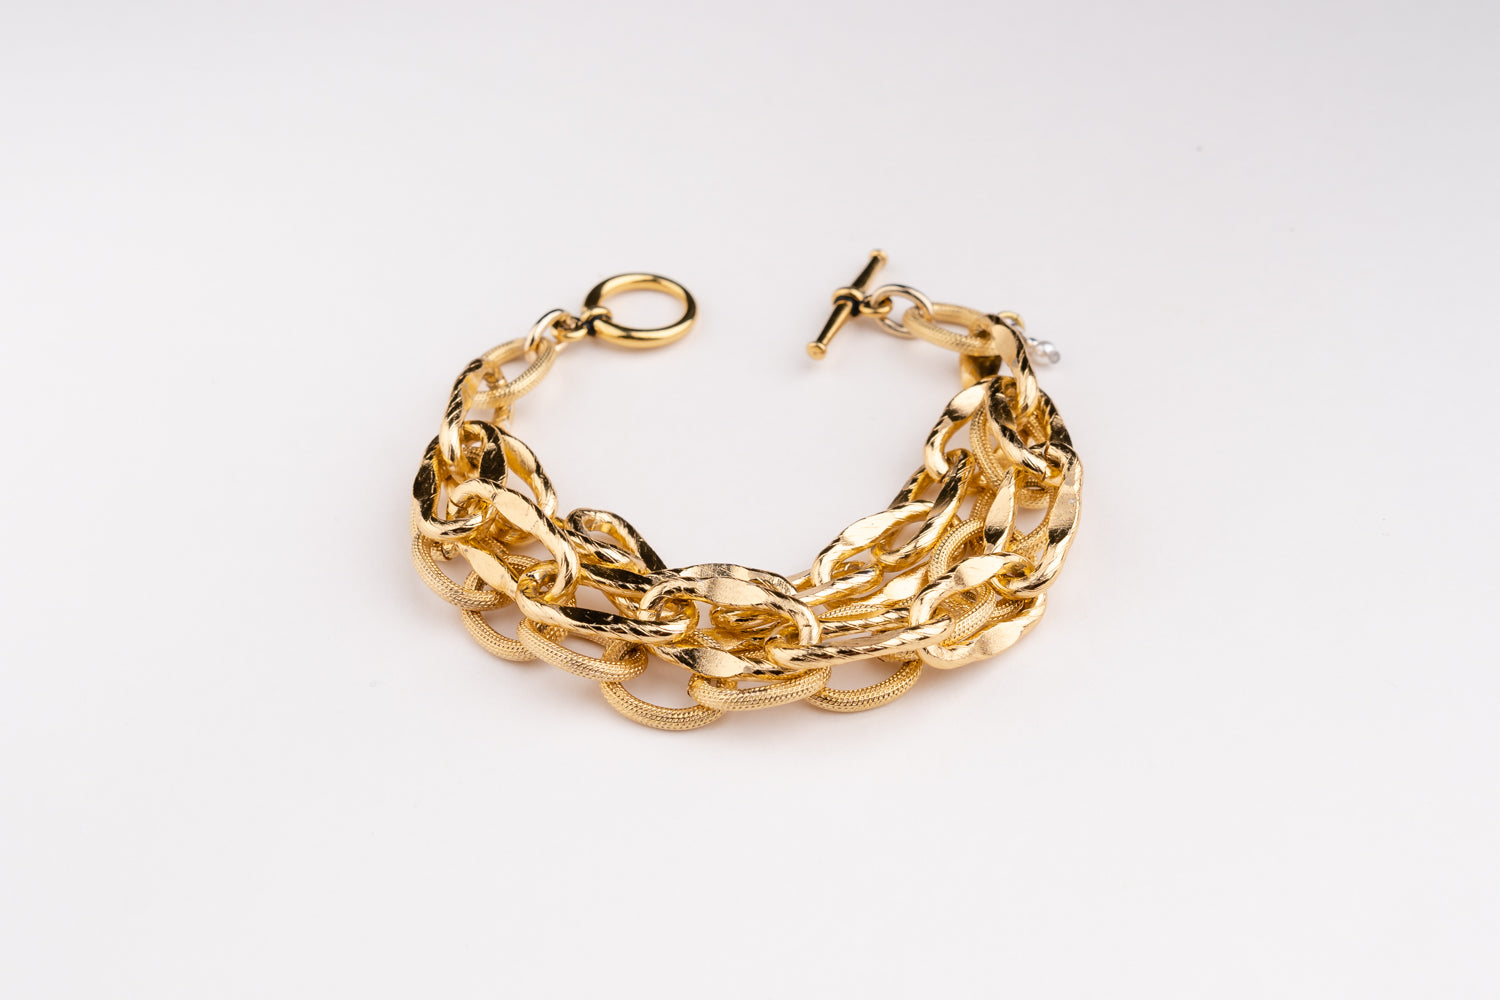 a Carolily Finery bracelet made from various gold plated chains